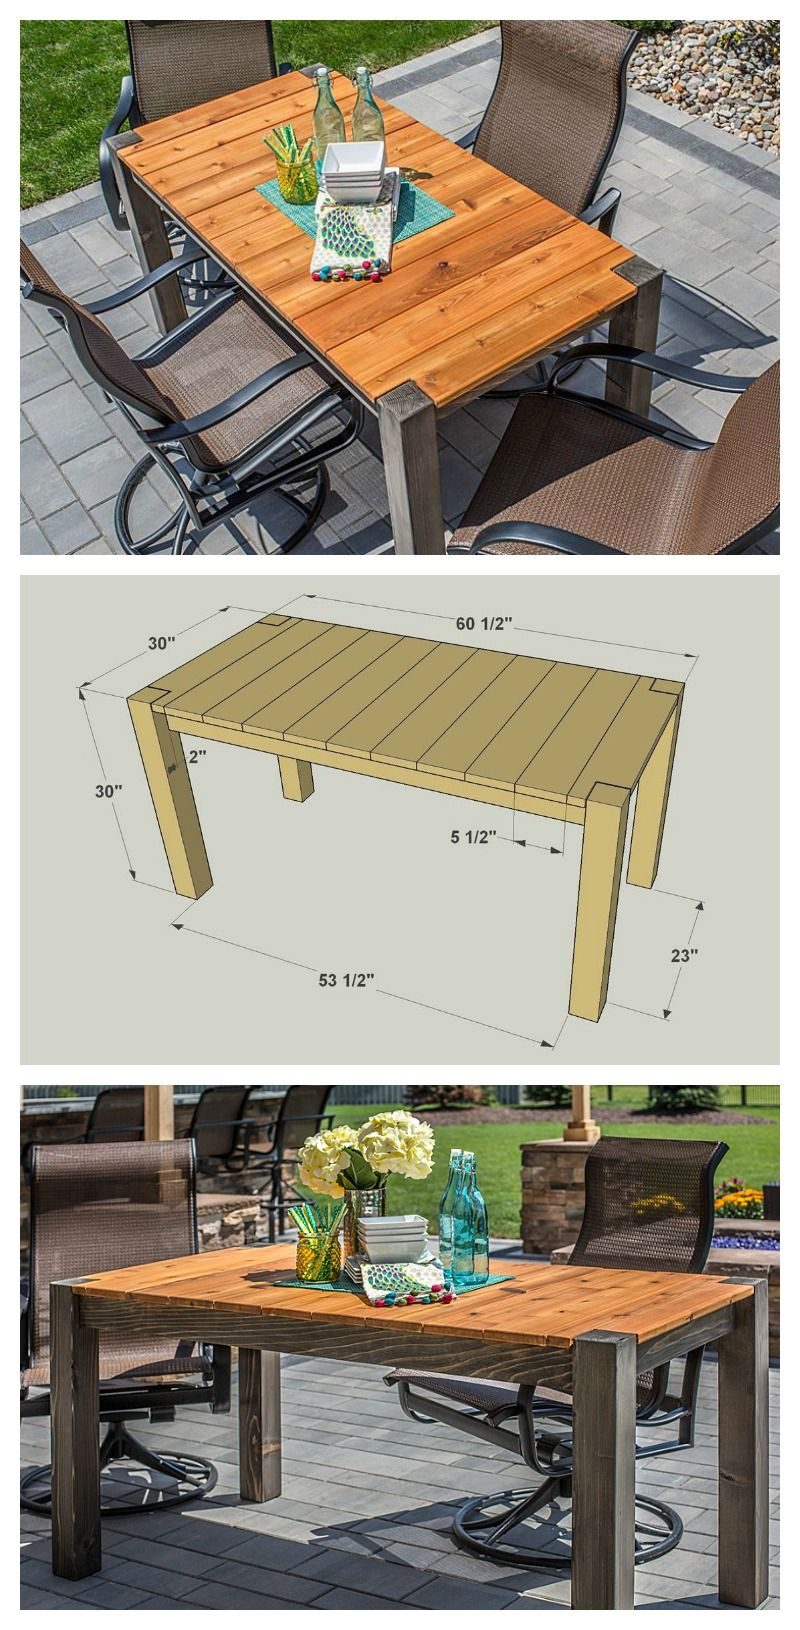 diy cedar patio table :: free plans at buildsomething